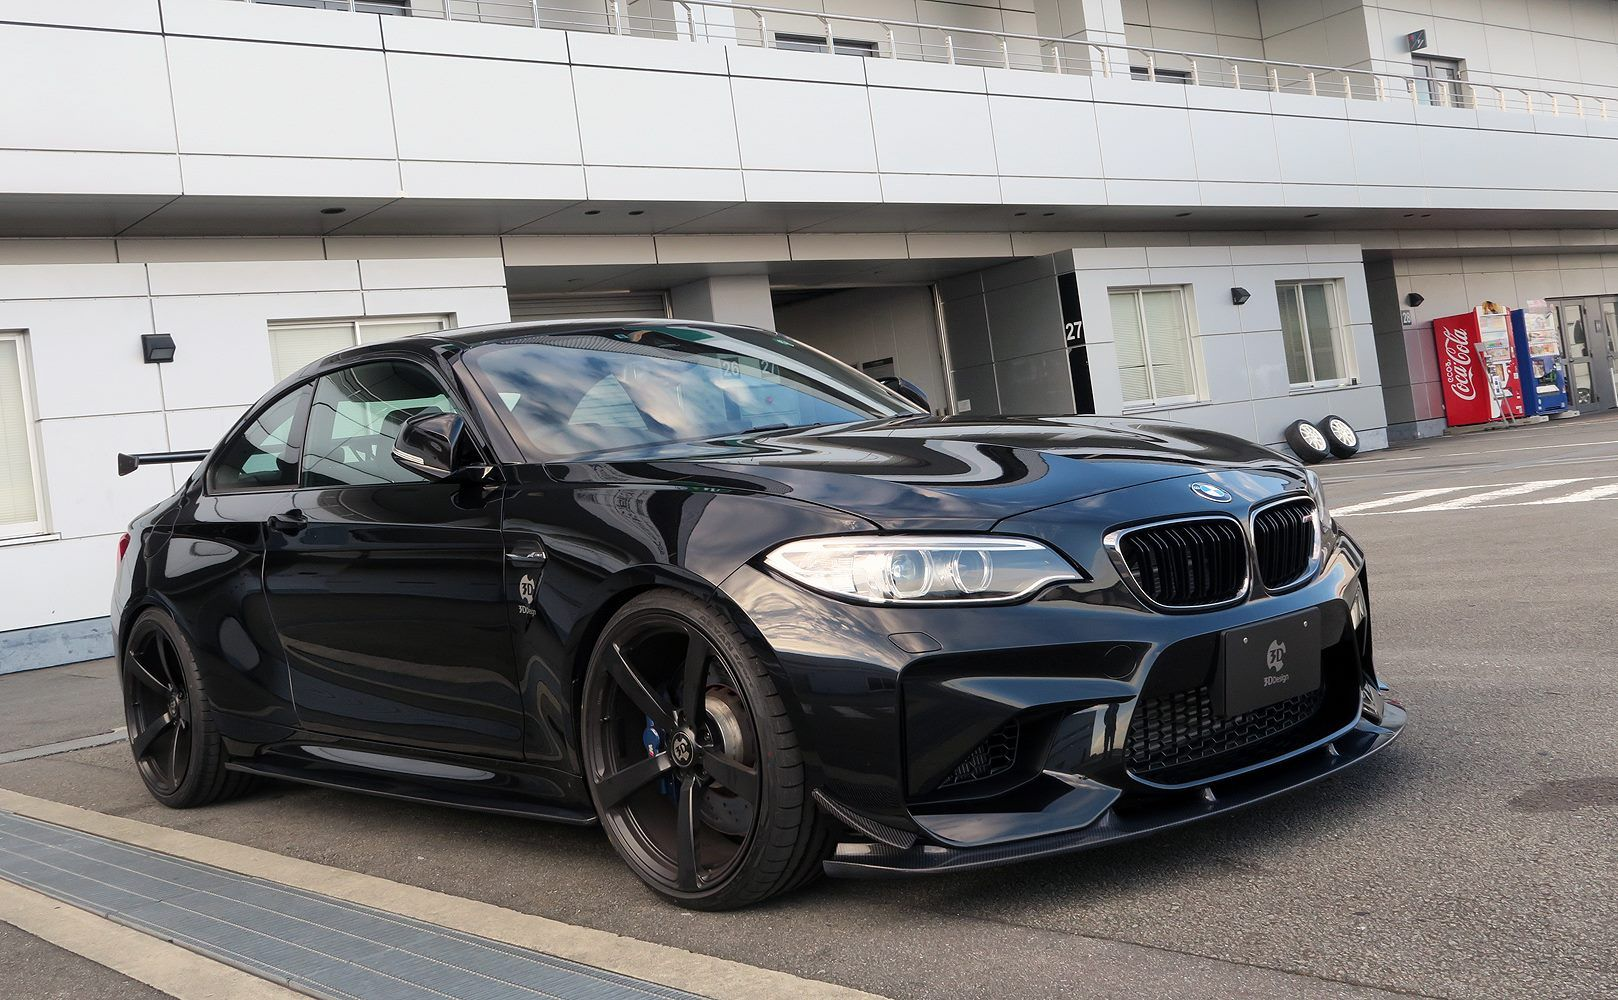 tuned bmw f87 m2 cars bmw bmw cars bmw m2. Black Bedroom Furniture Sets. Home Design Ideas